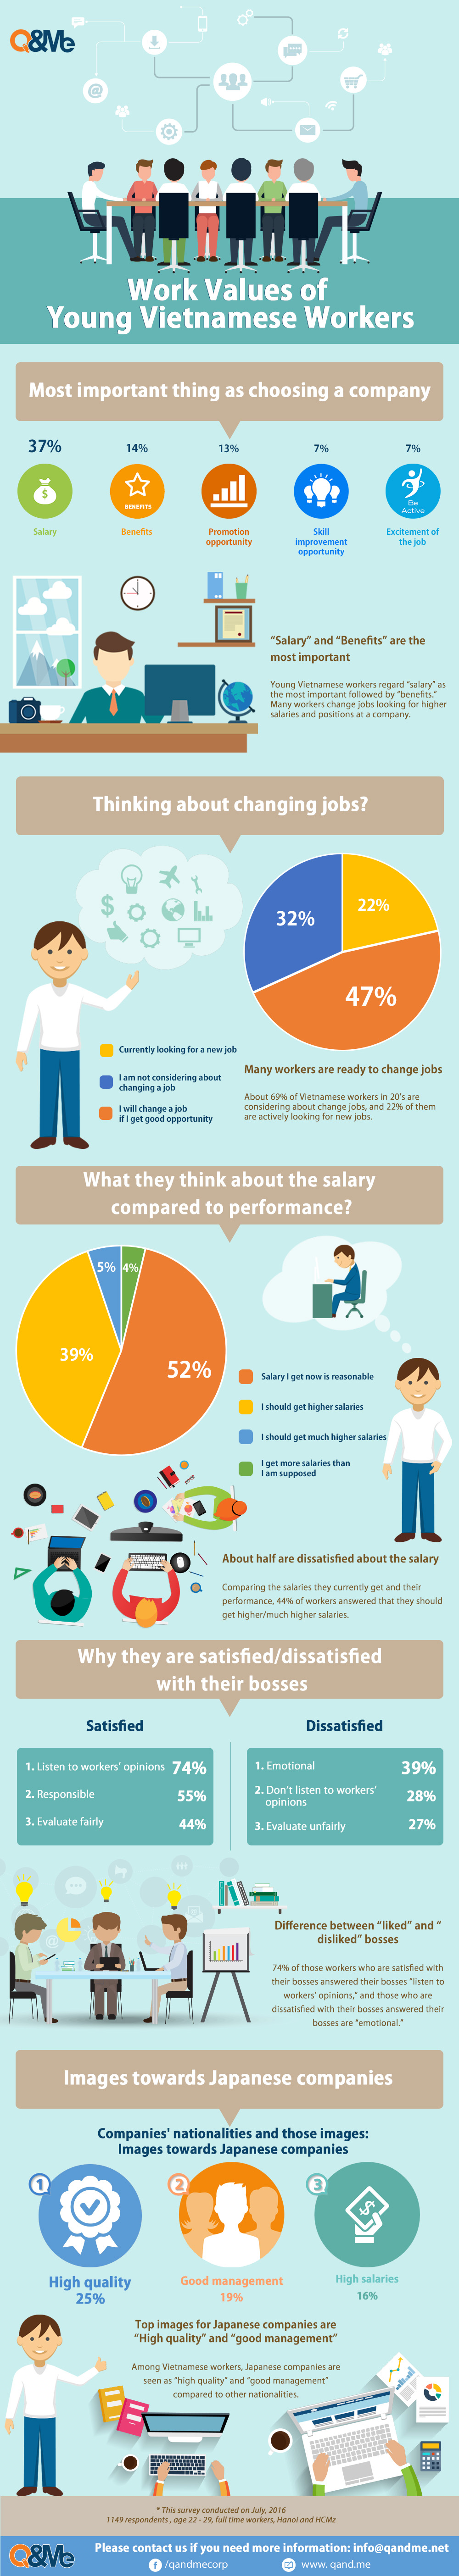 check out our infographics of work value for young viet se check out our infographics of work value for young viet se workers via our intensive vietnam market research